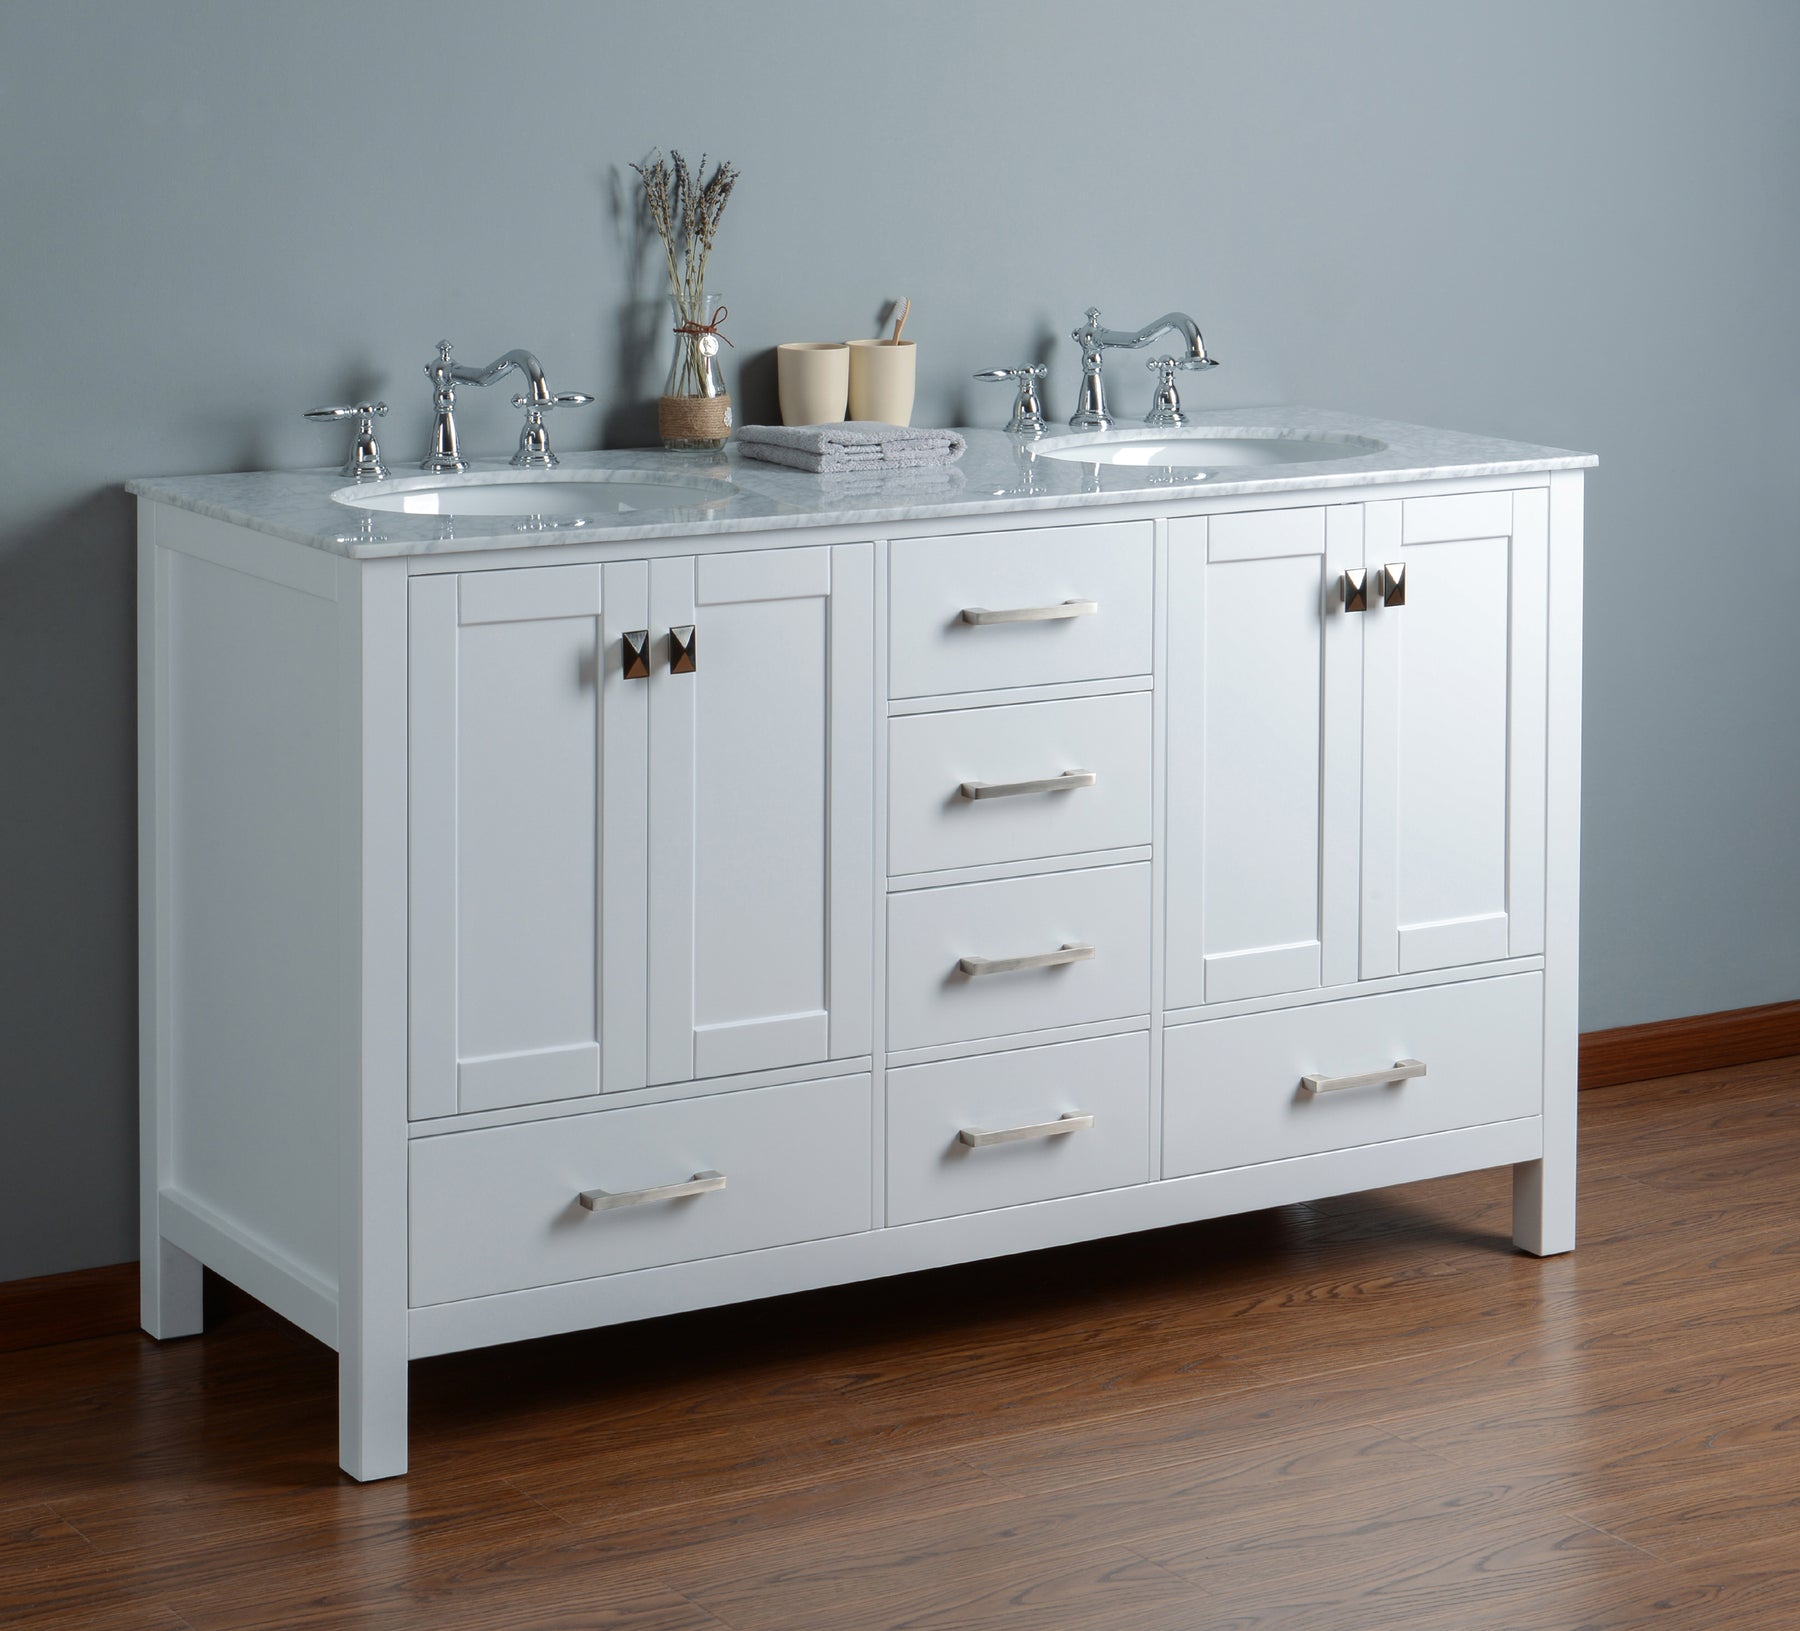 Bathroom Vanity MHB Buying Guide